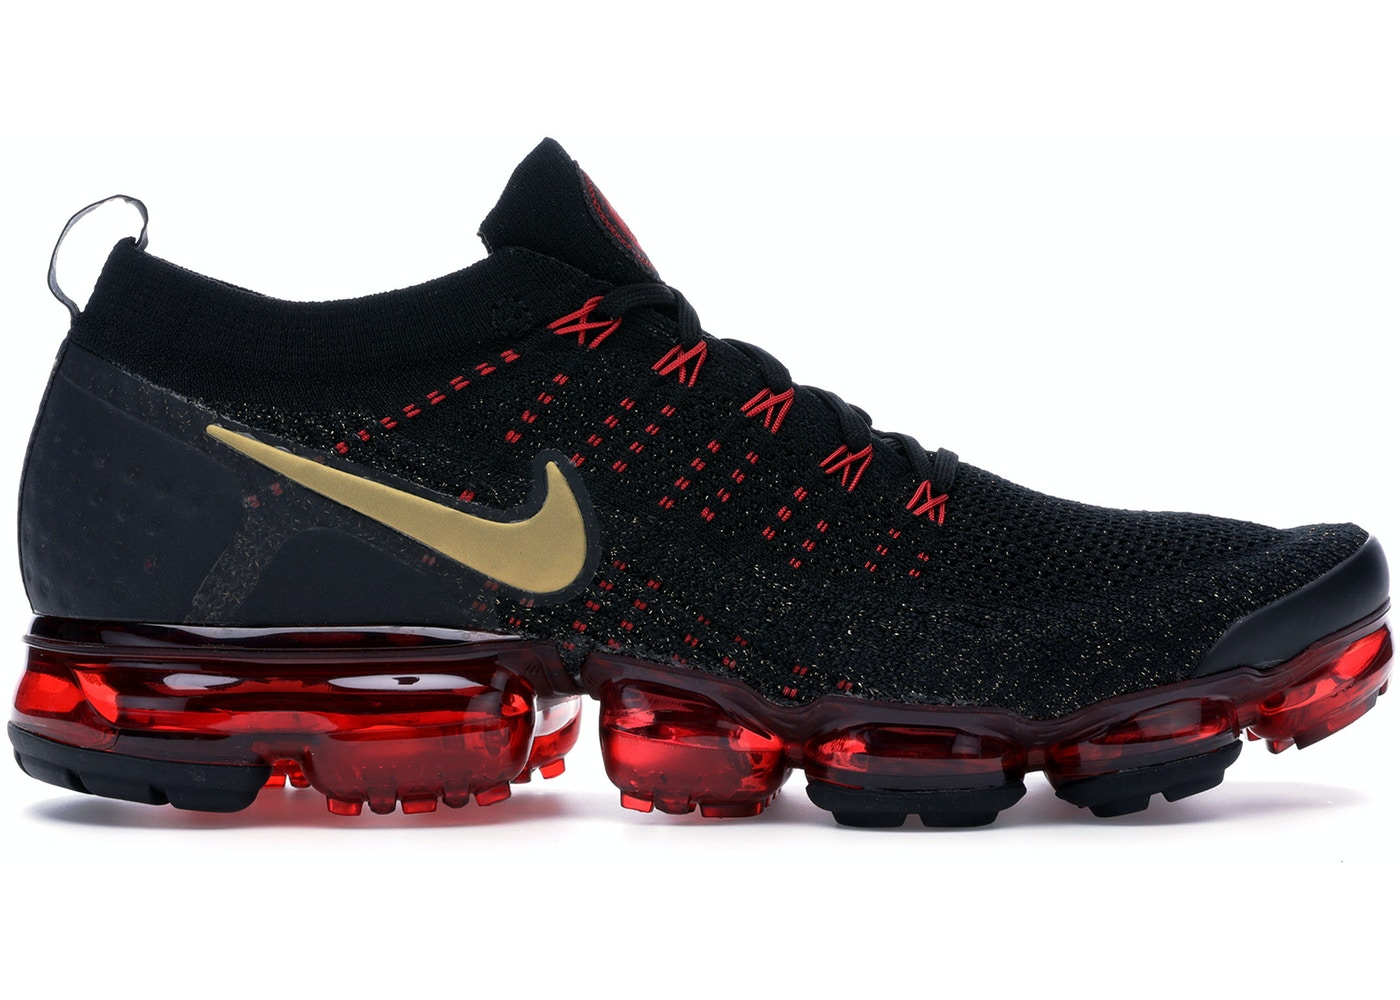 Air Vapormax Flyknit 2 Chinese New Year 2019 Bq7036 001